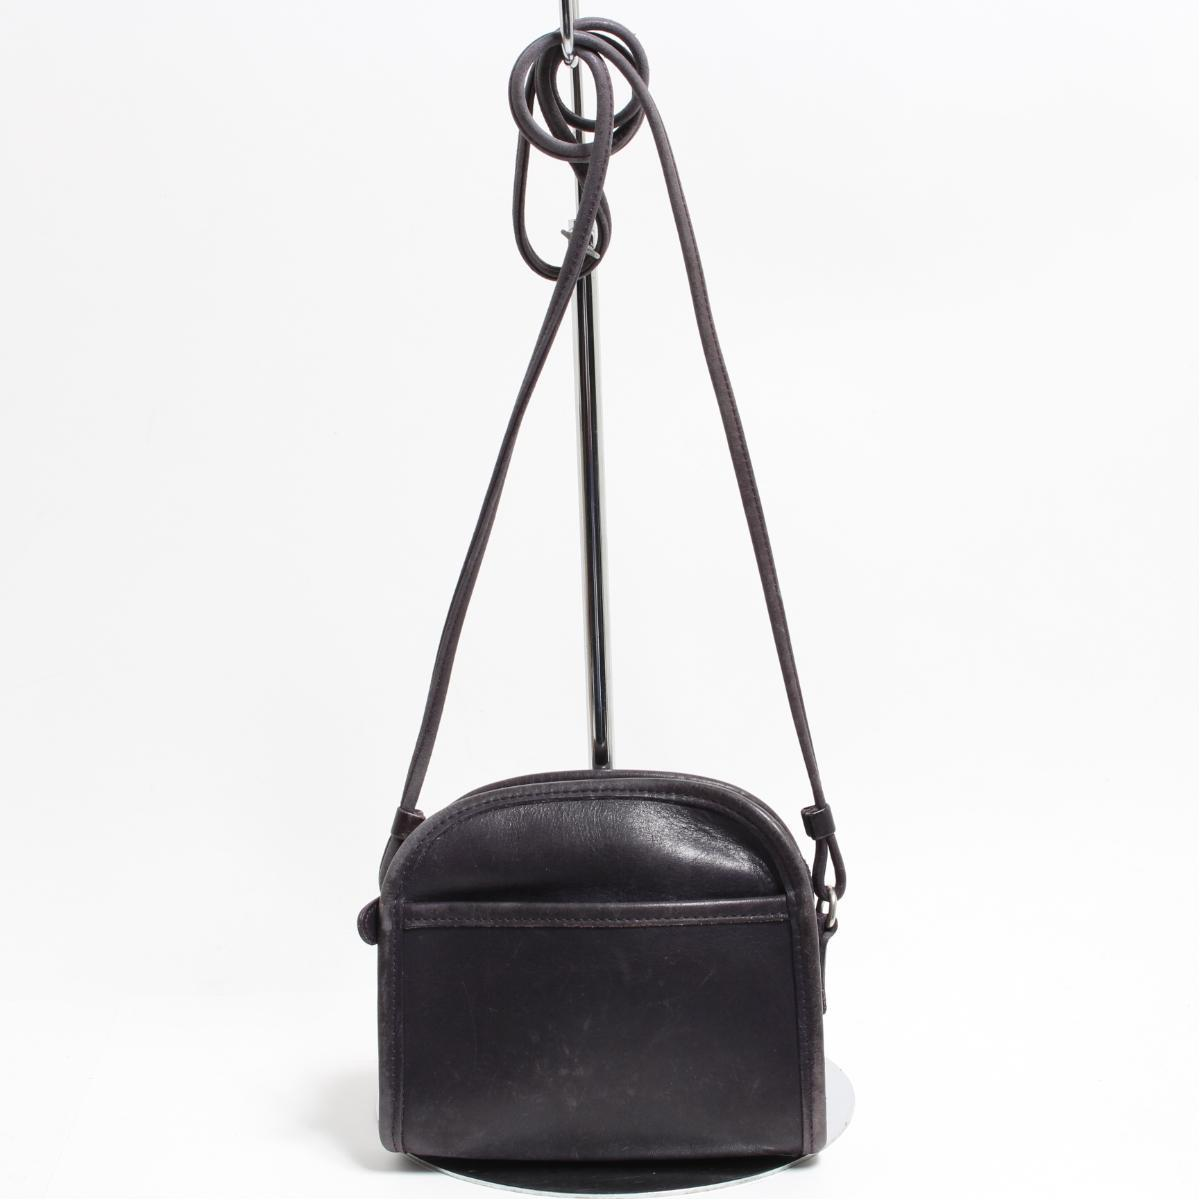 676bb34a12 Vintage /anc0696 made in coach COACH OLD COACH old coach genuine leather  leather pochette shoulder bag USA